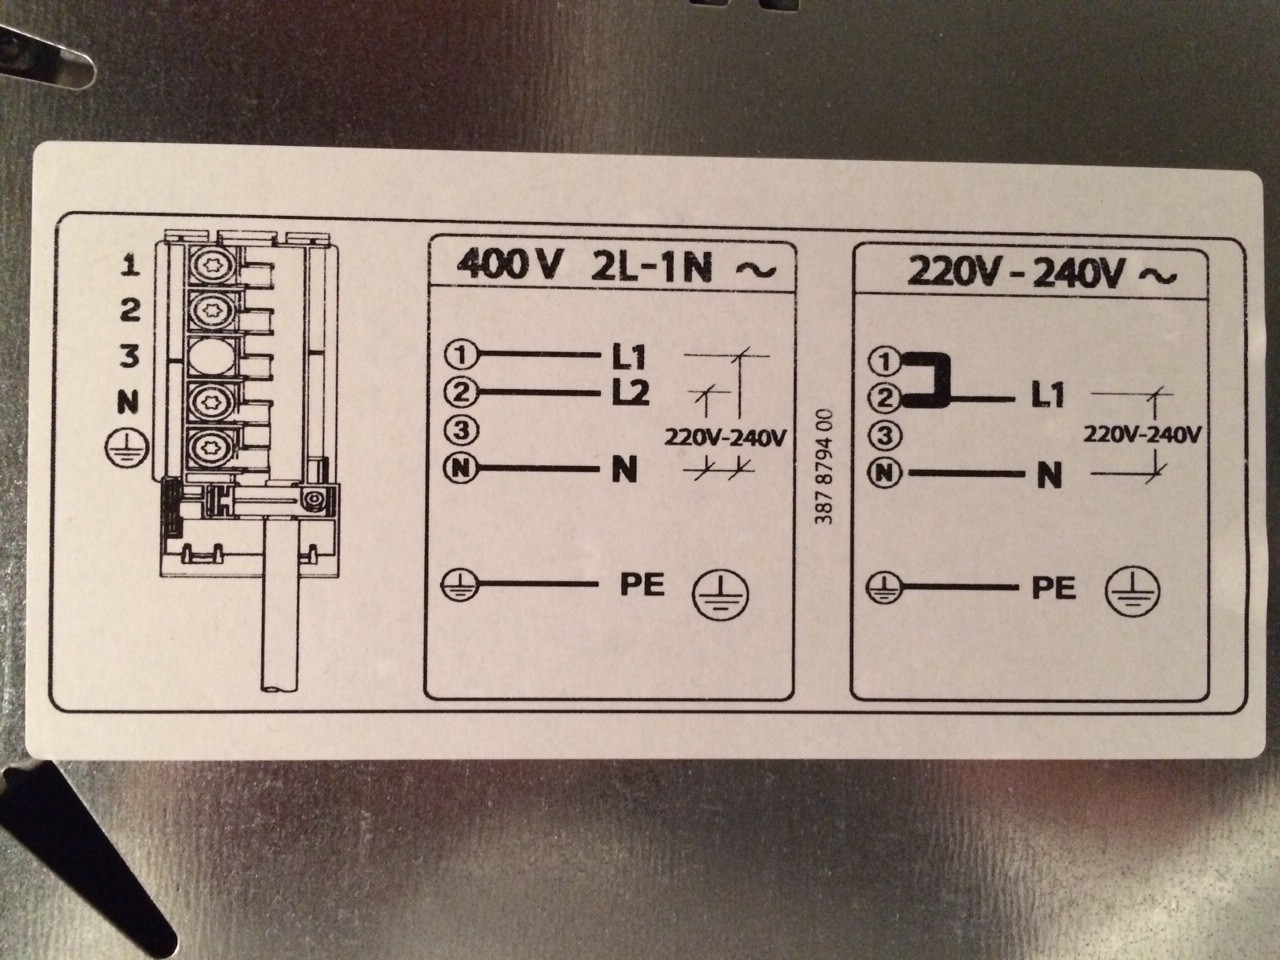 Oven Wire Diagram Auto Electrical Wiring 7 Pin Trailer Plug Lincoln Navigator